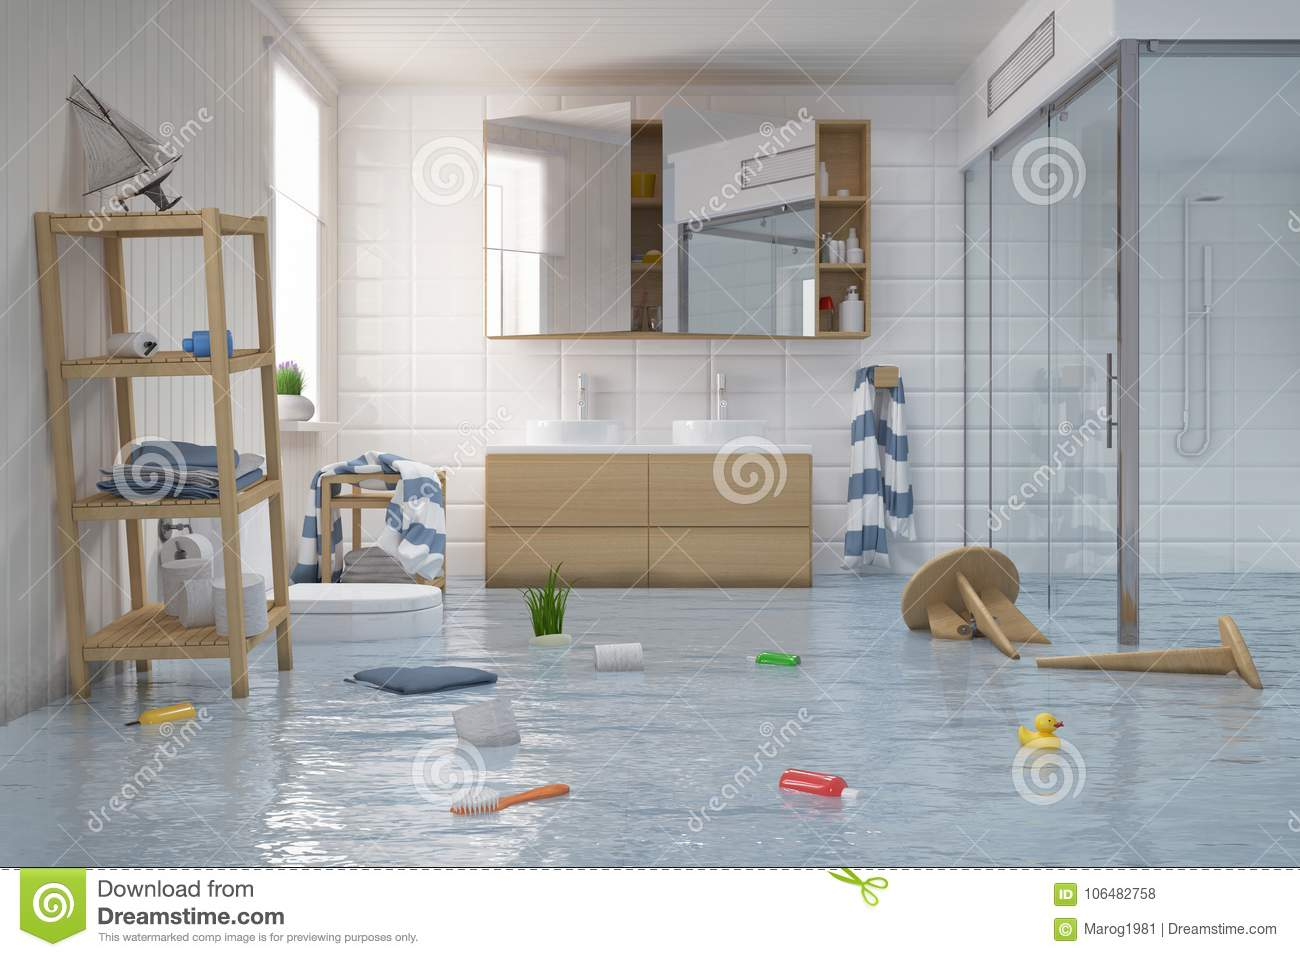 Clean white toilet and flood.